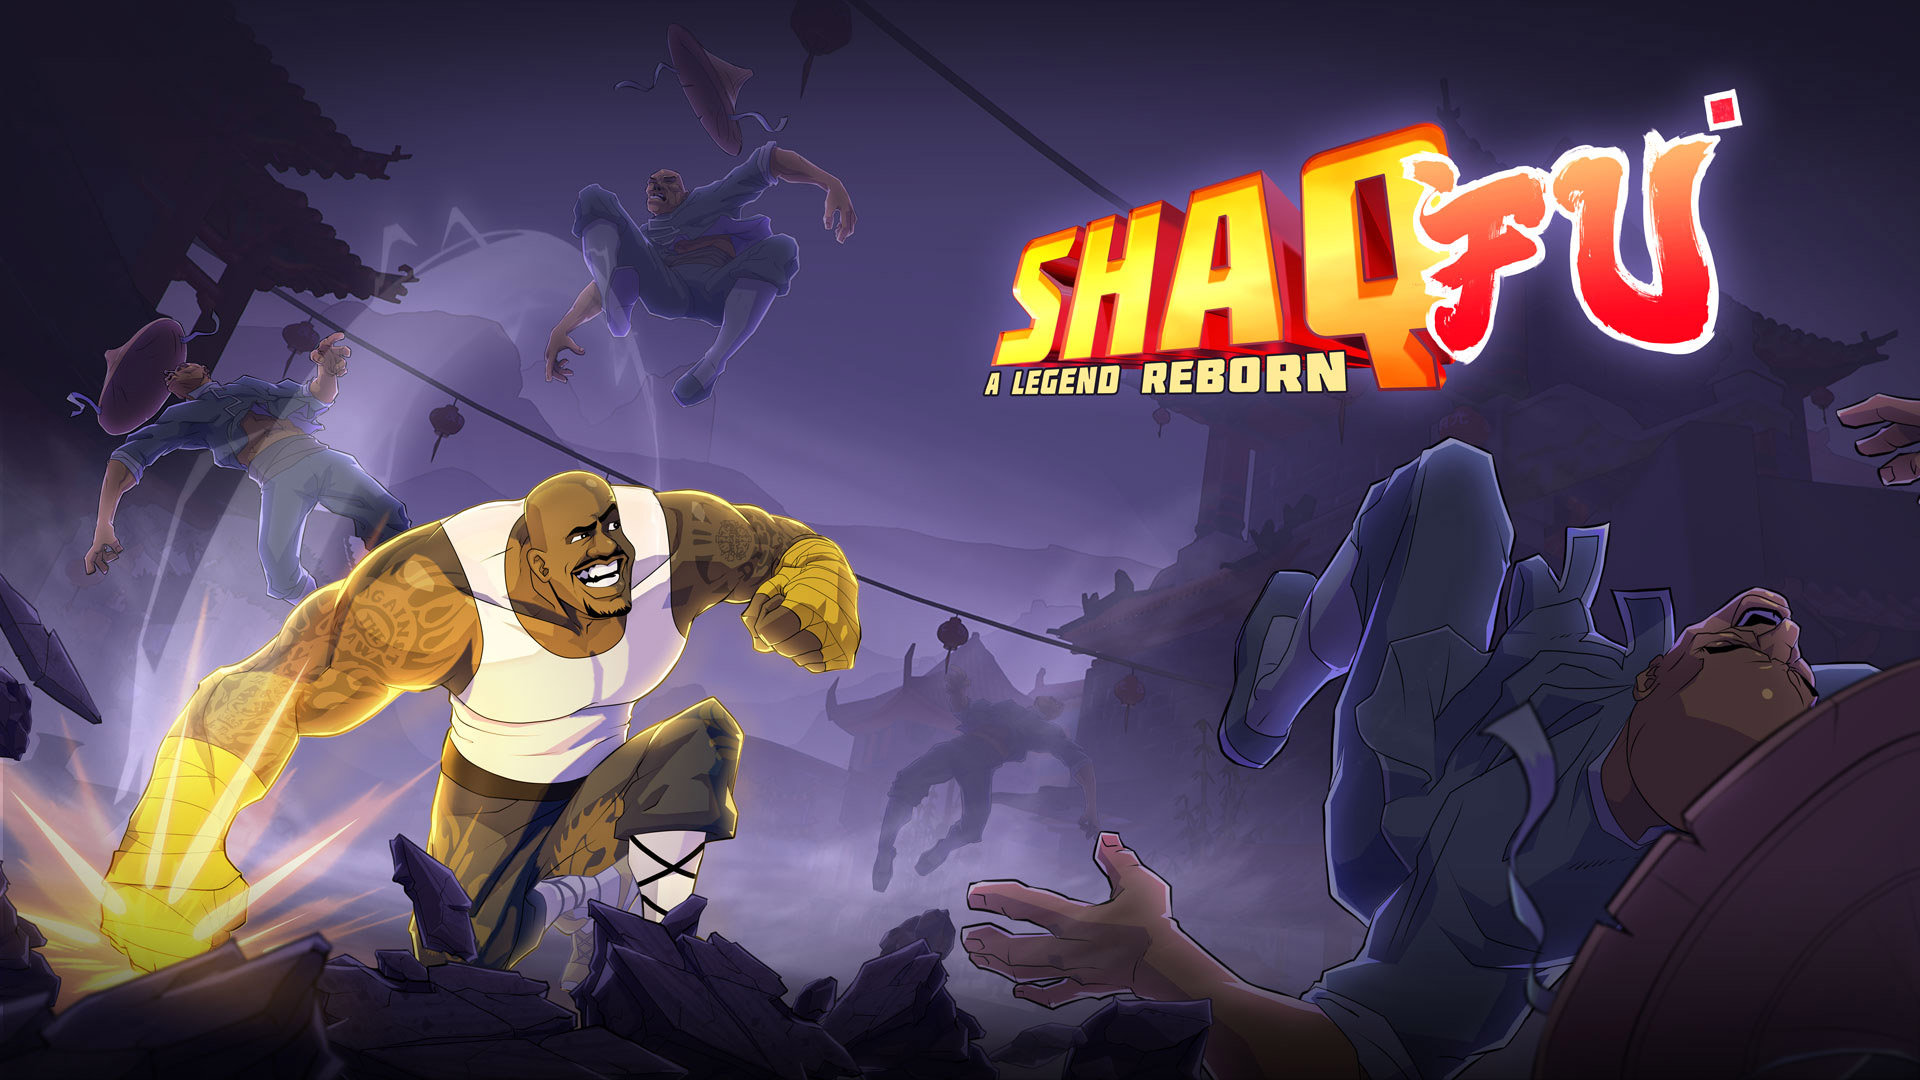 Shaq-Fu: A Legend Reborn Wallpaper in 1920x1080